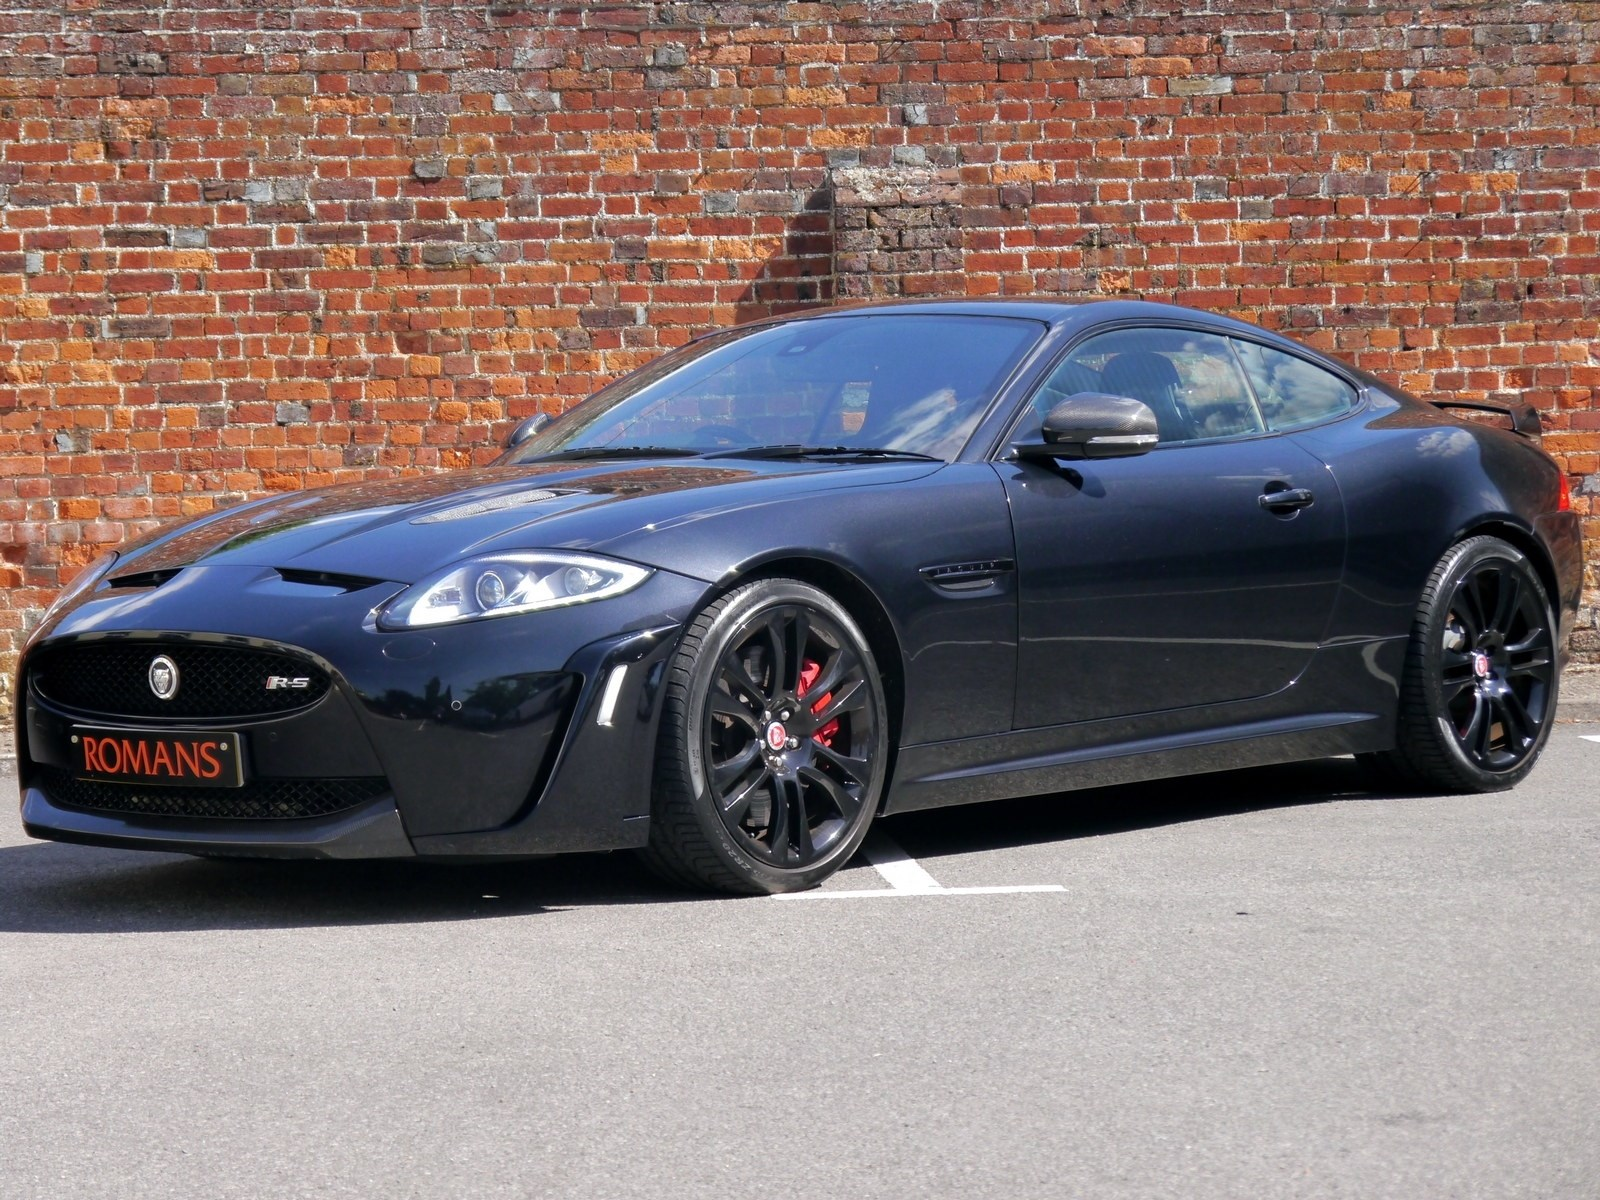 Jaguar Xkr S 5 0 V8 Supercharged Reversing Camera Unmarked Fsh New Reduced Price For Sale